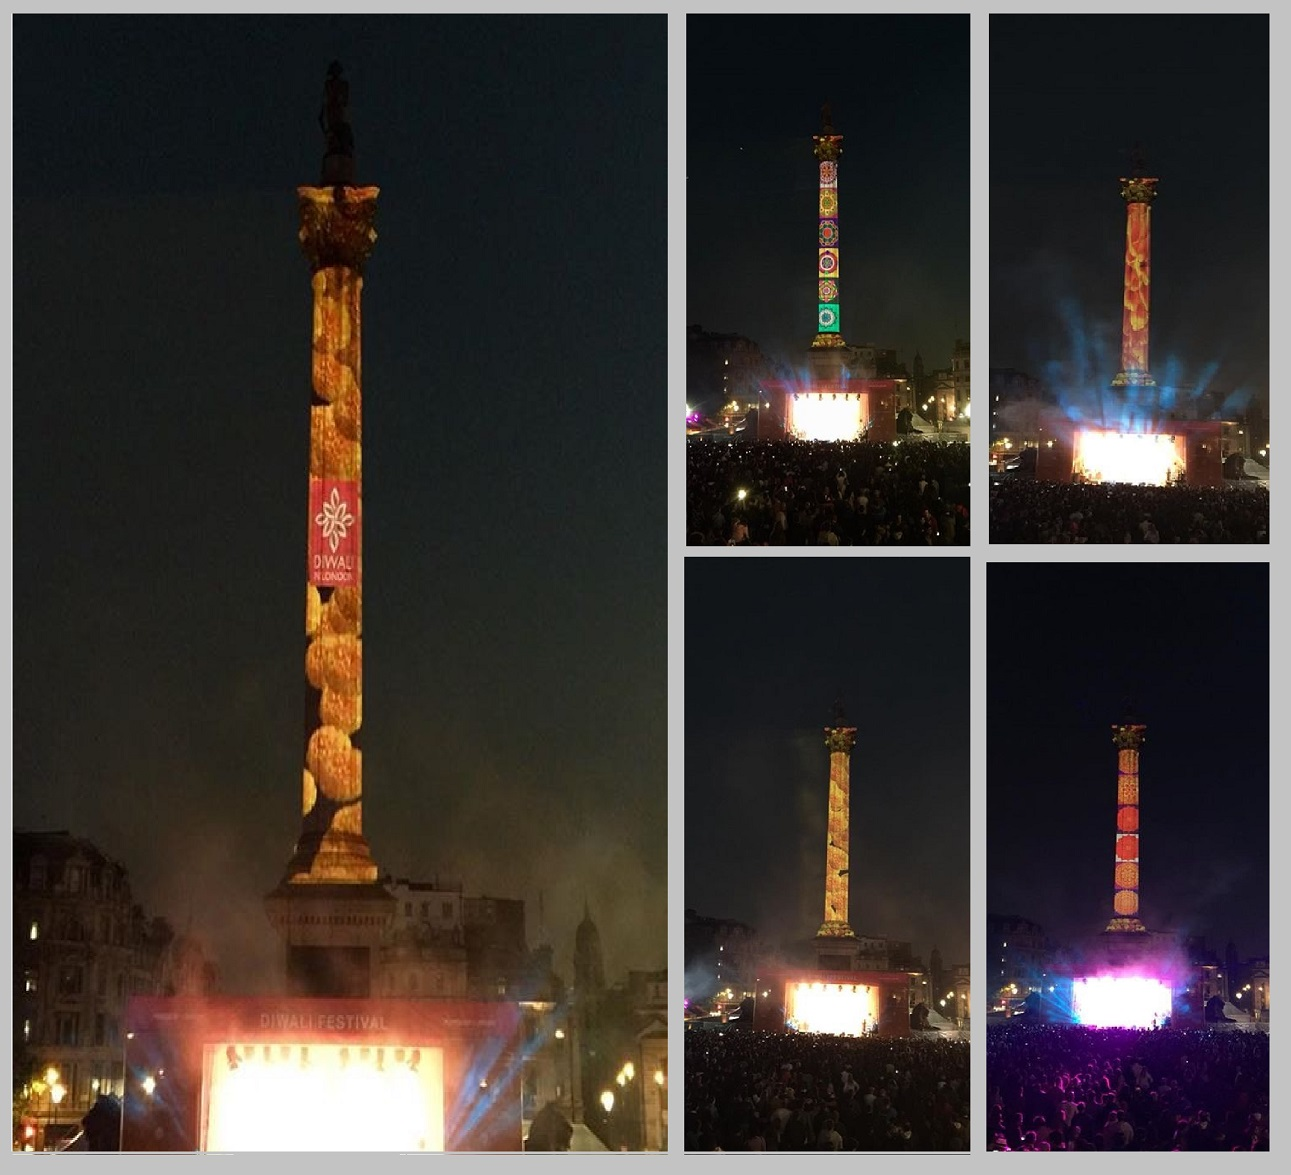 Diwali projections, Nelson's Column London